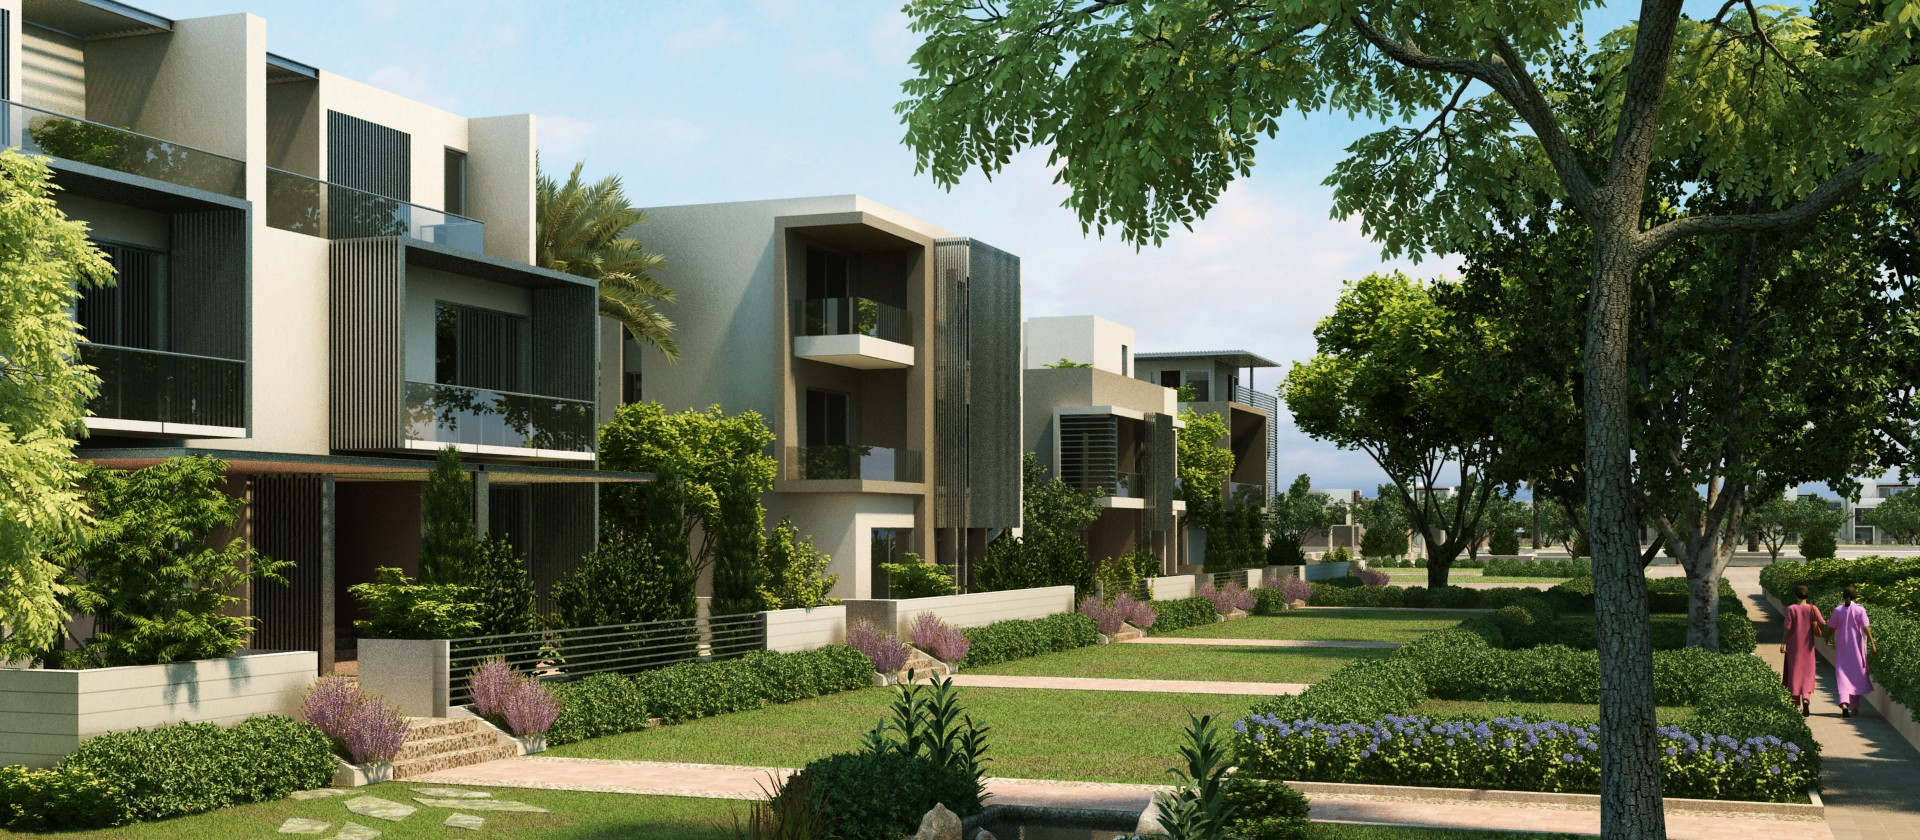 india s leading real estate developer Get information of top builders in india, property developers in india, real  estate developer in india, construction companies in india.